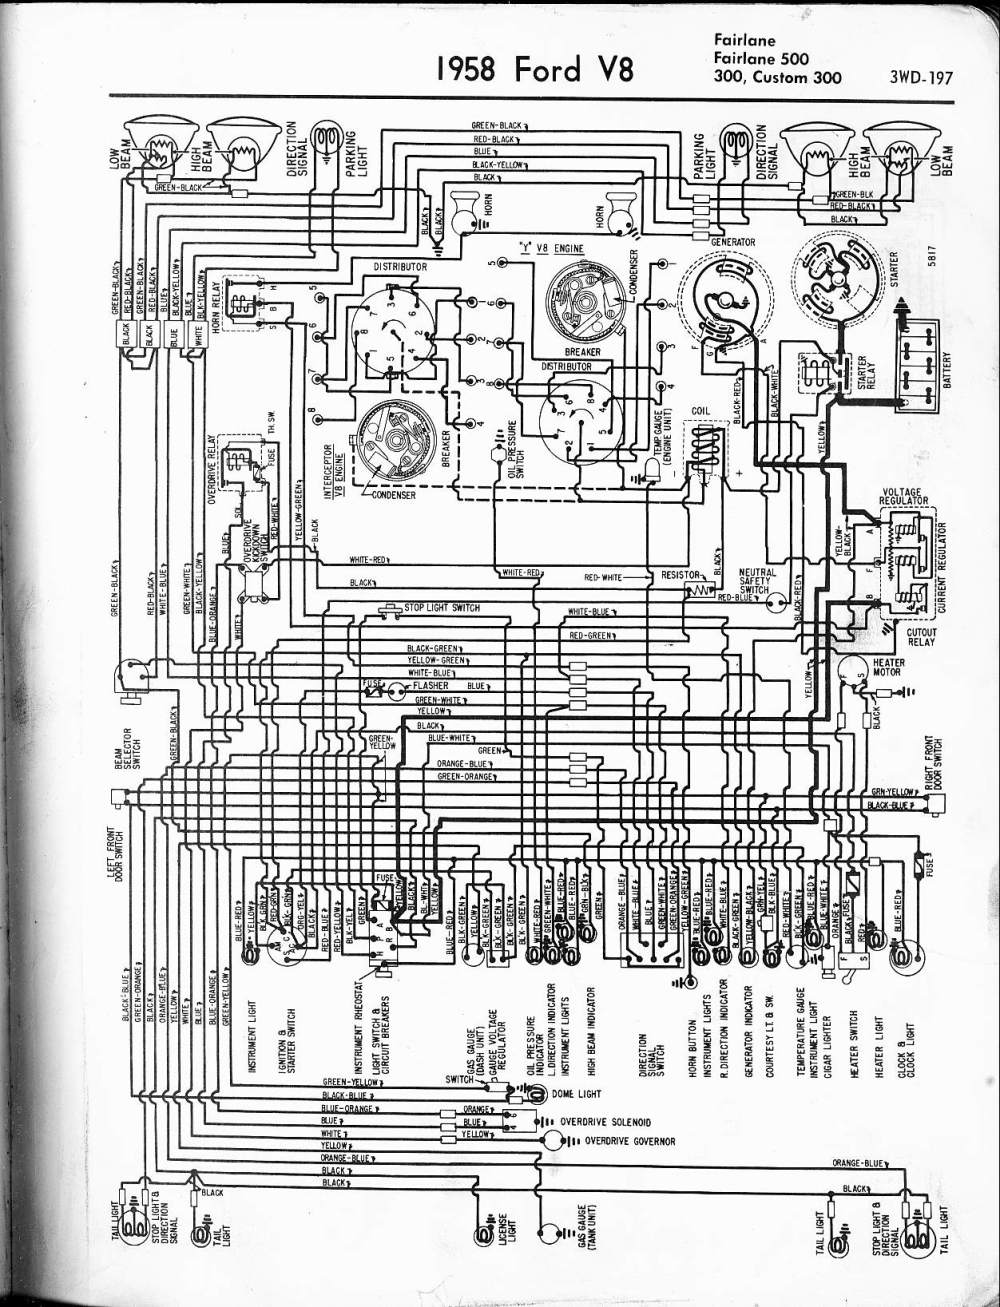 medium resolution of 1955 ford fairlane wiring diagram generator wiring library 2012 dodge avenger wiring diagram 1955 ford wiring diagram